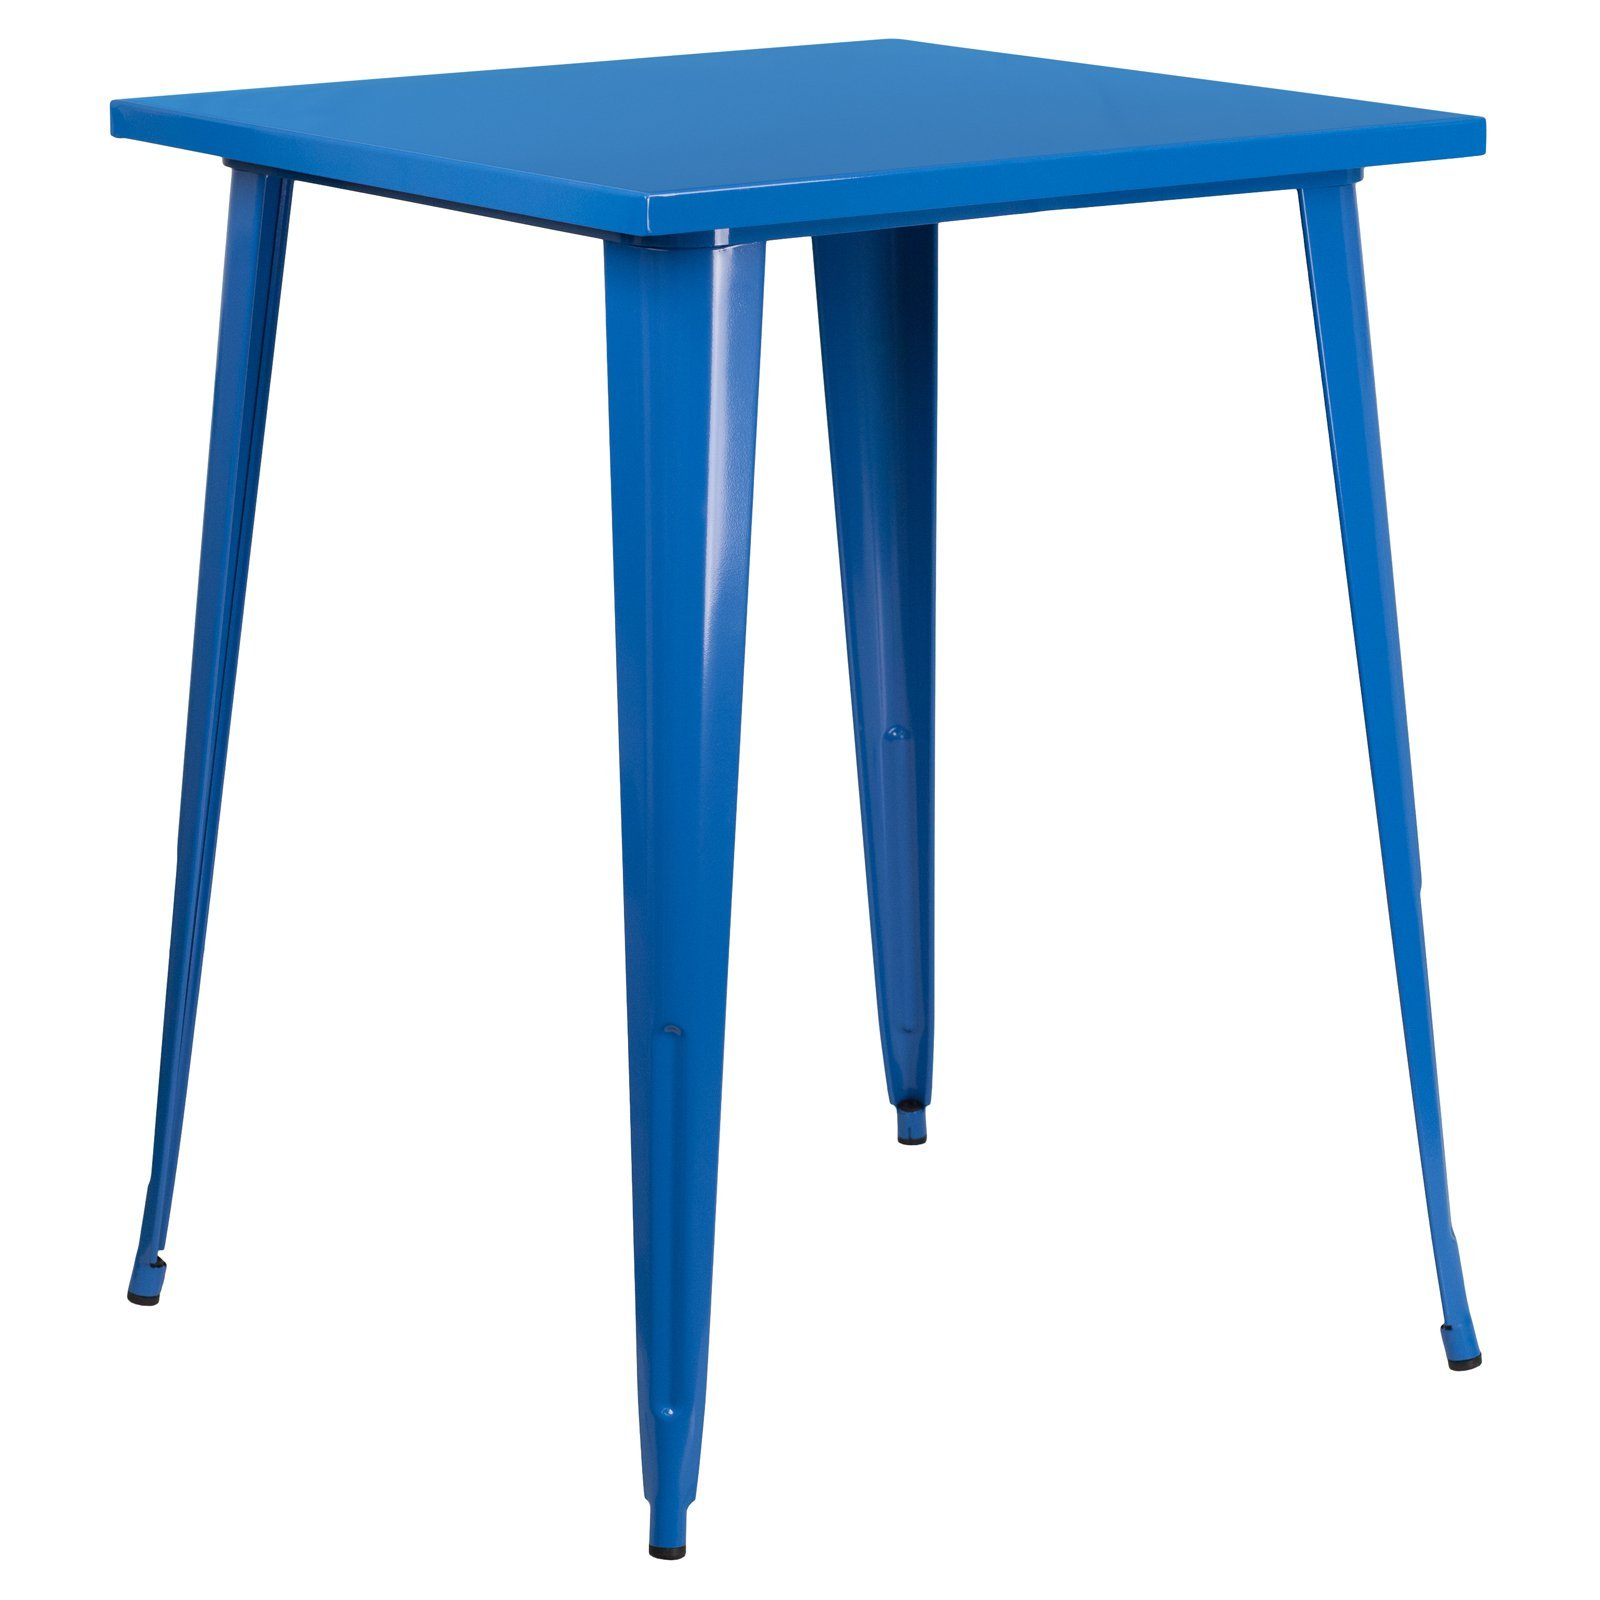 Basic 31.5'' Square Metal Indoor/Outdoor Bar Height Table with Protective Rubber Feet to Prevent Floor Damage, Thick Brace Underneath for Added Stability, Blue + Expert Home Guide by Love US